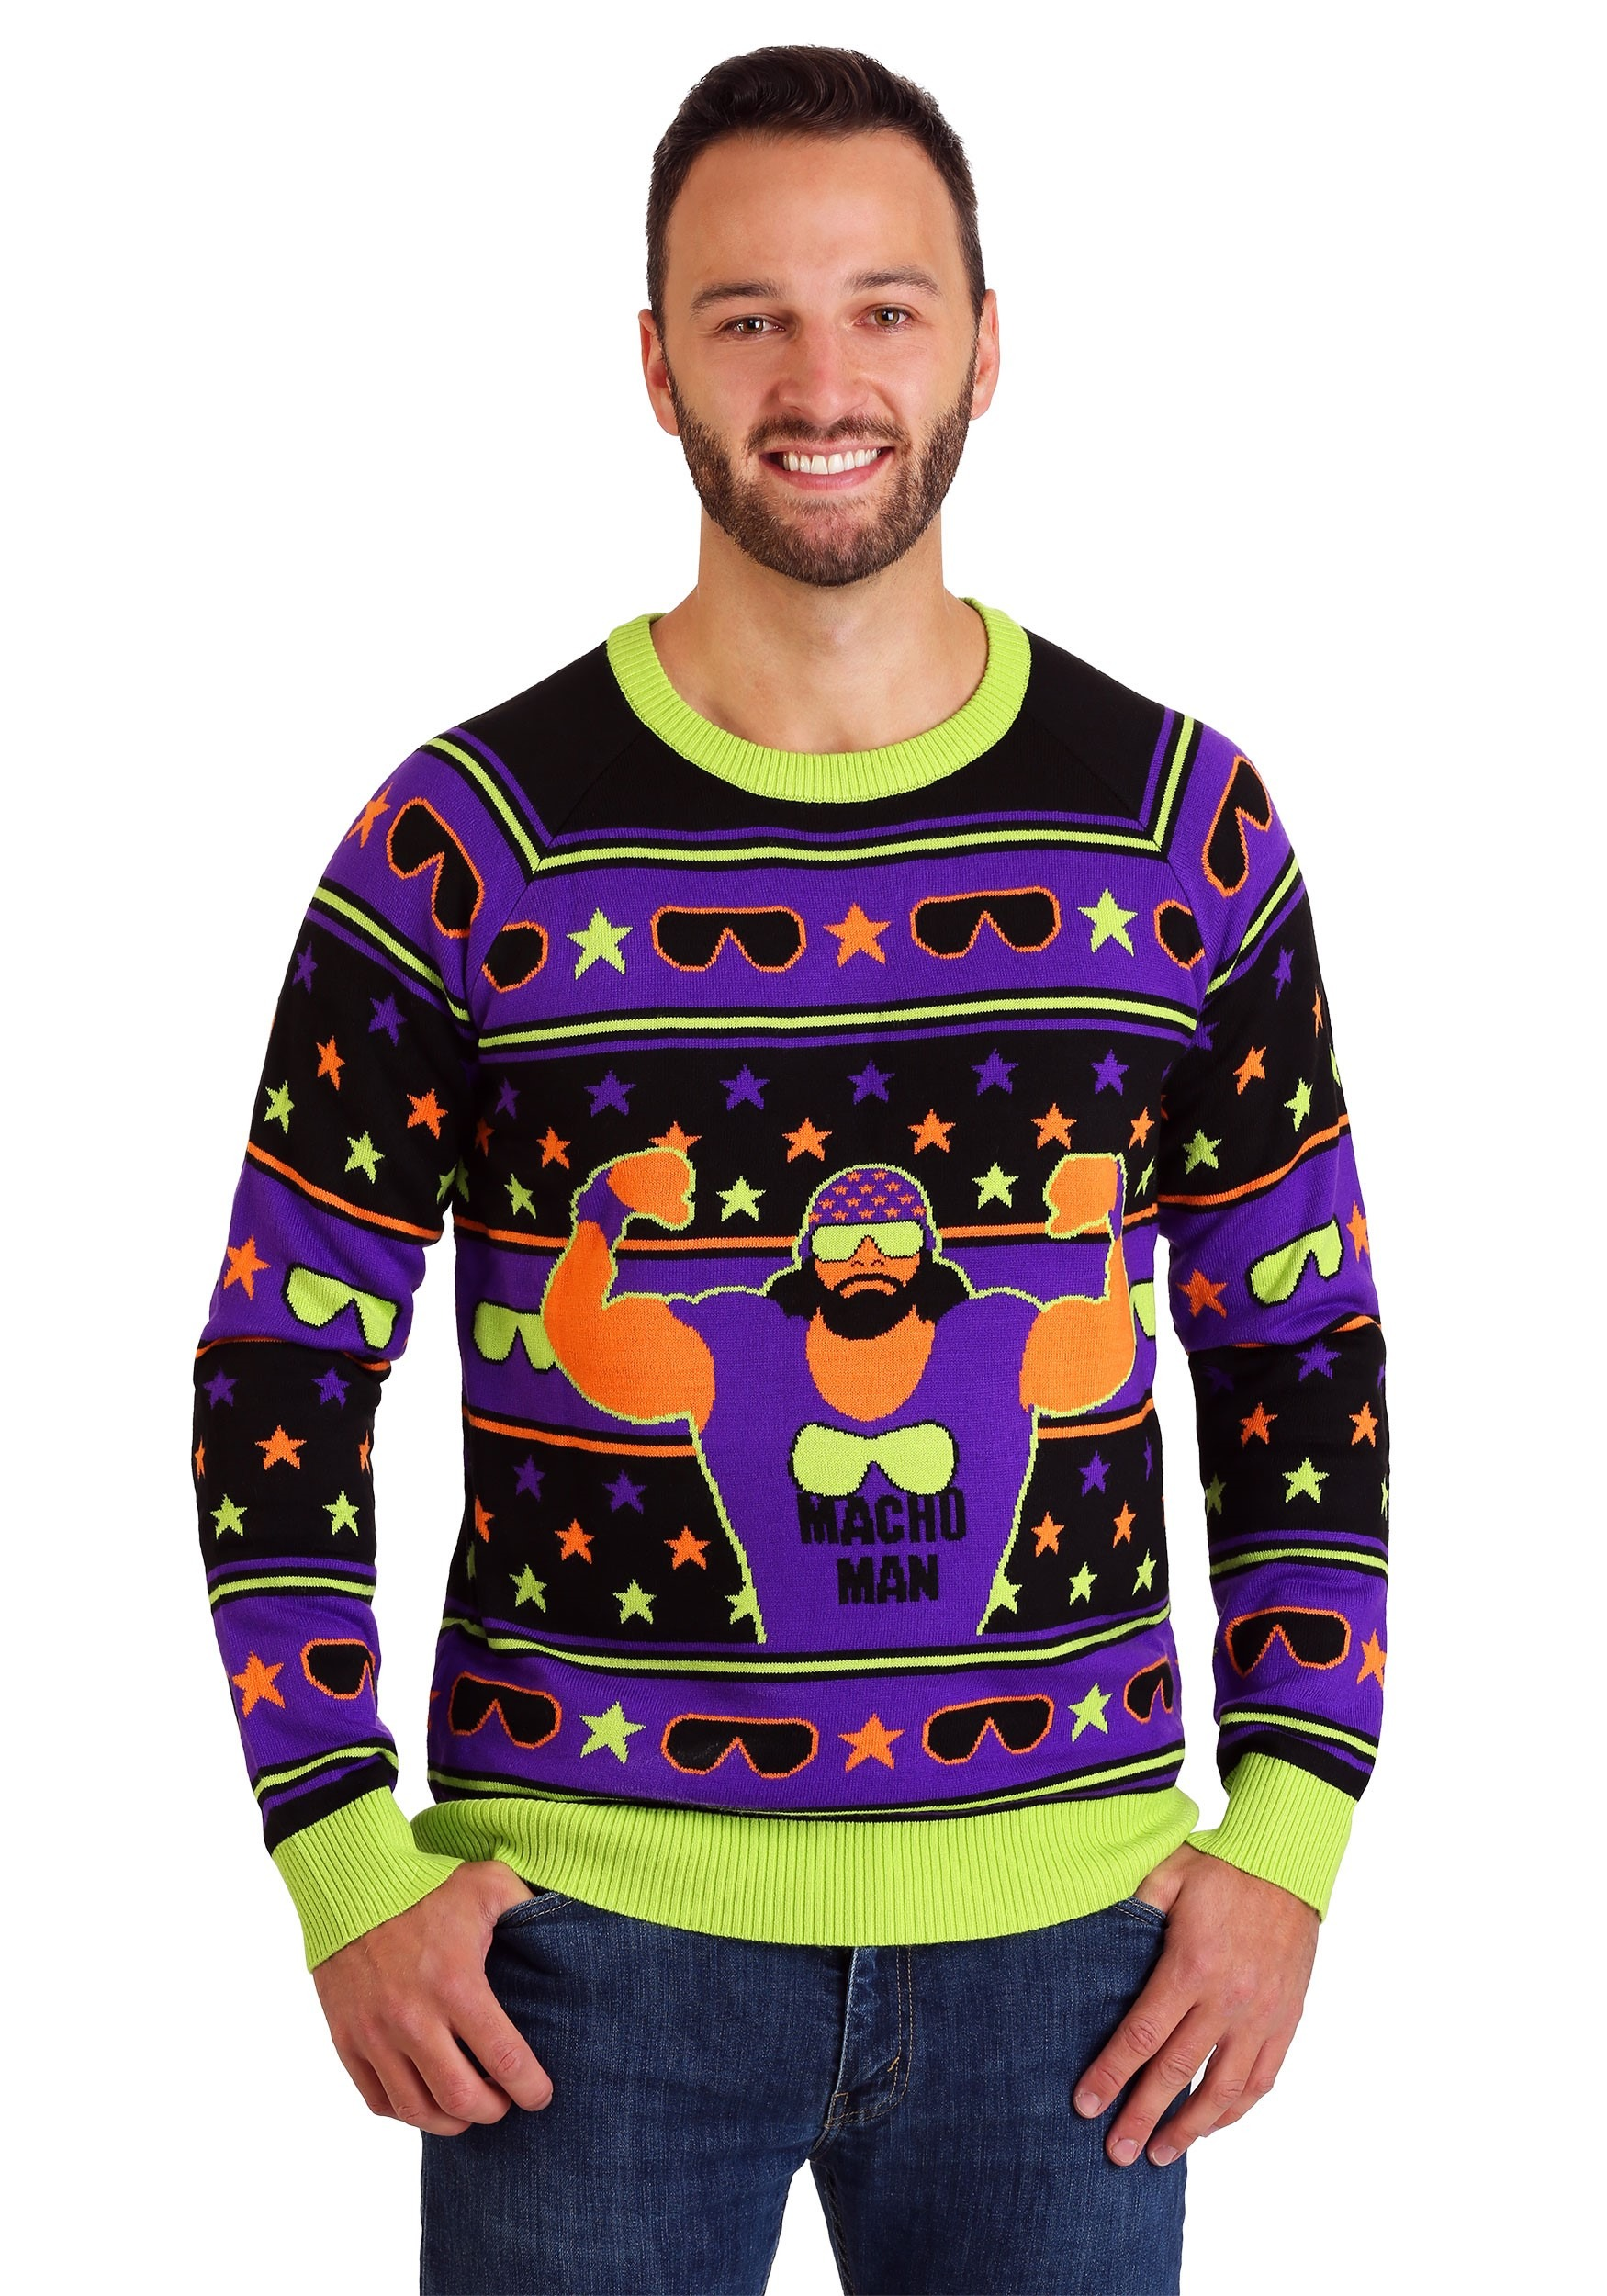 WWE Macho Man Ugly Christmas Sweater for Adults